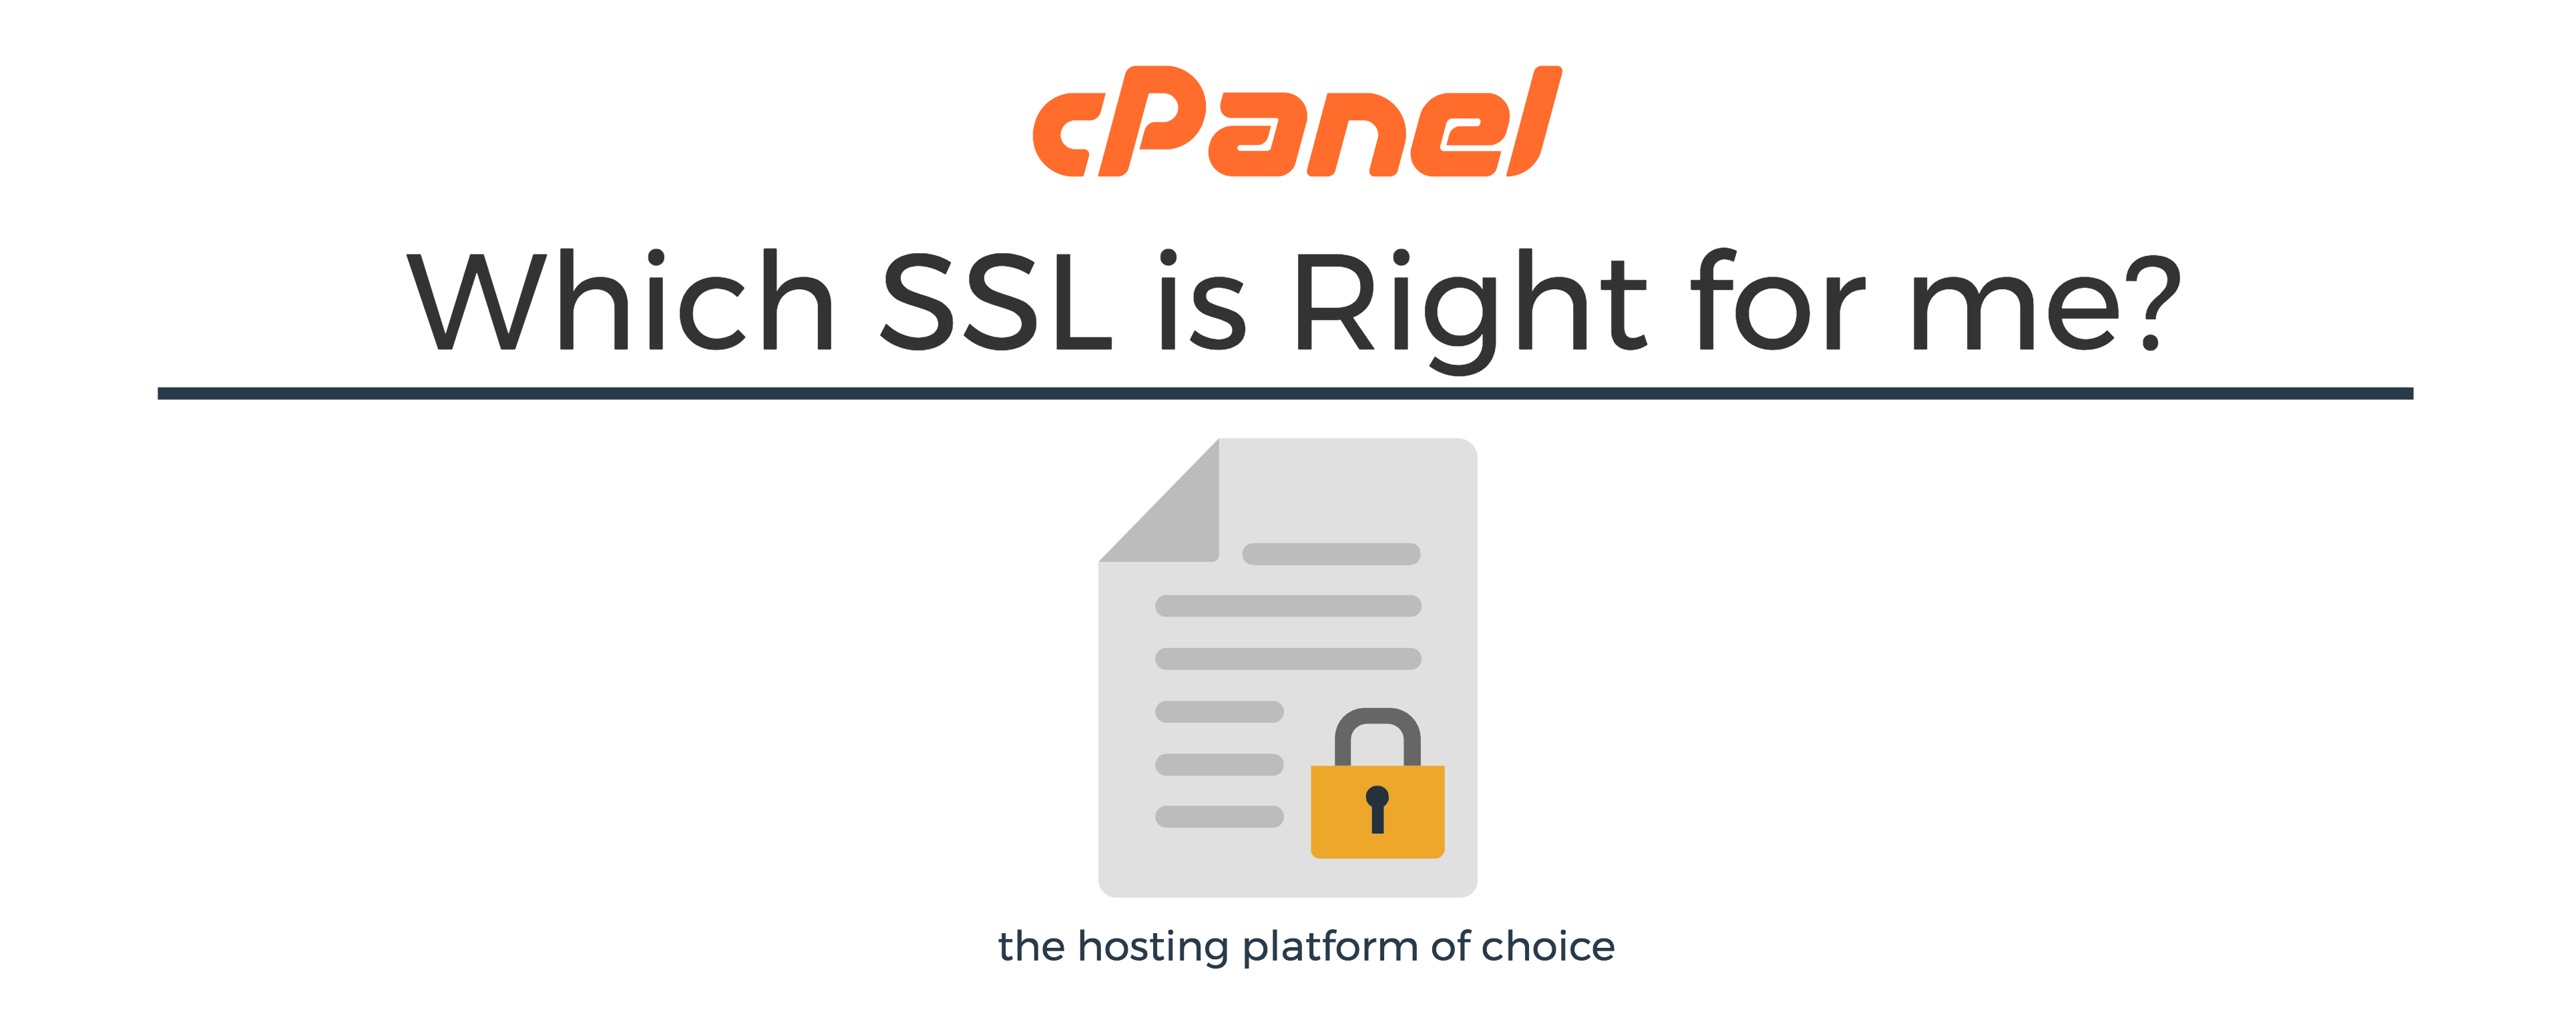 Which SSL is Right For Me? | cPanel Blog